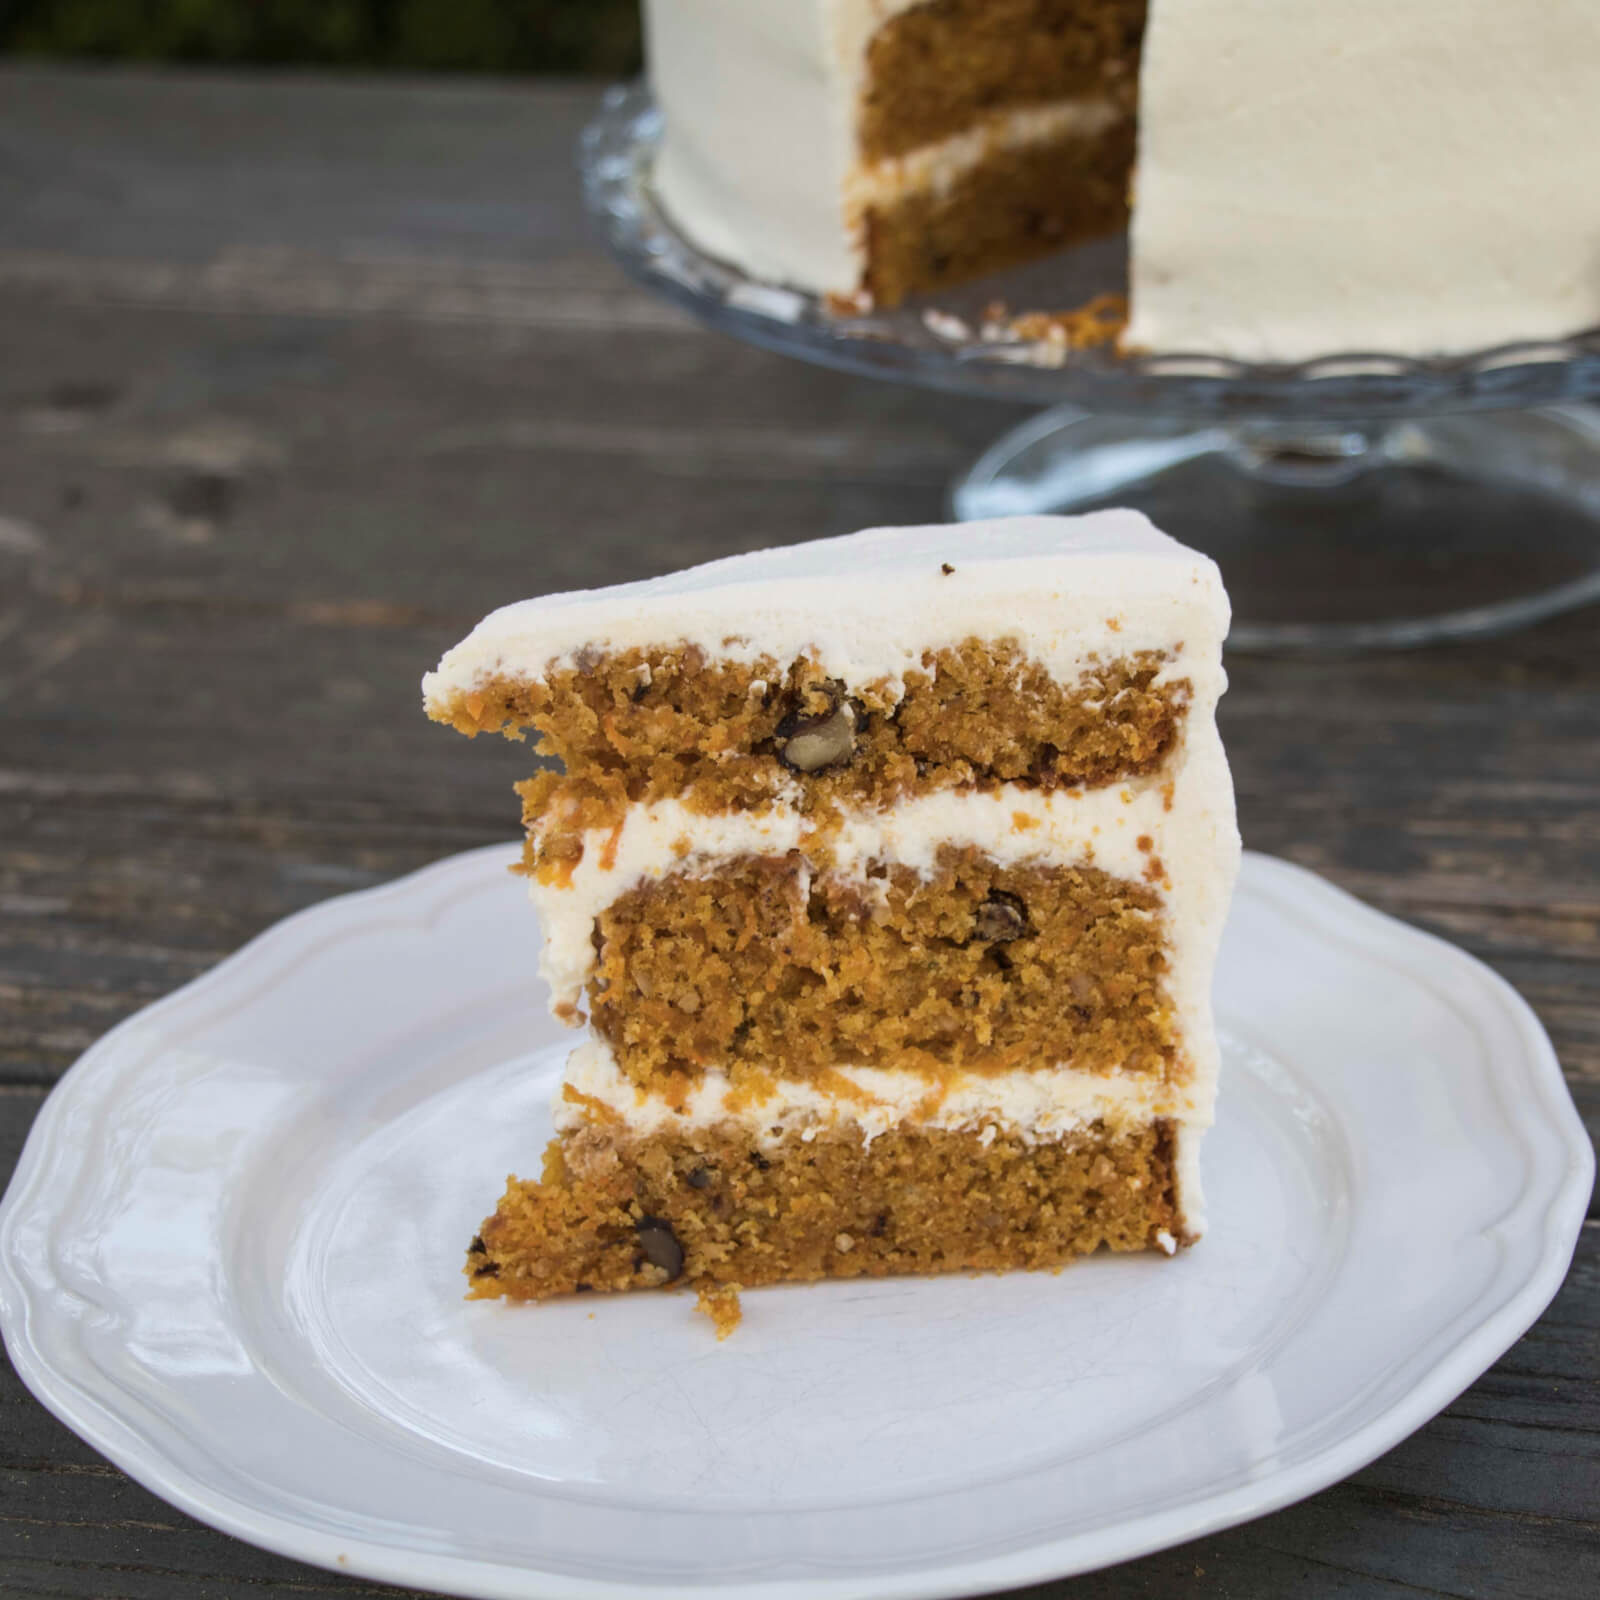 Carrot cake_best carrot cake recipe_carrot cake recipe from scratch